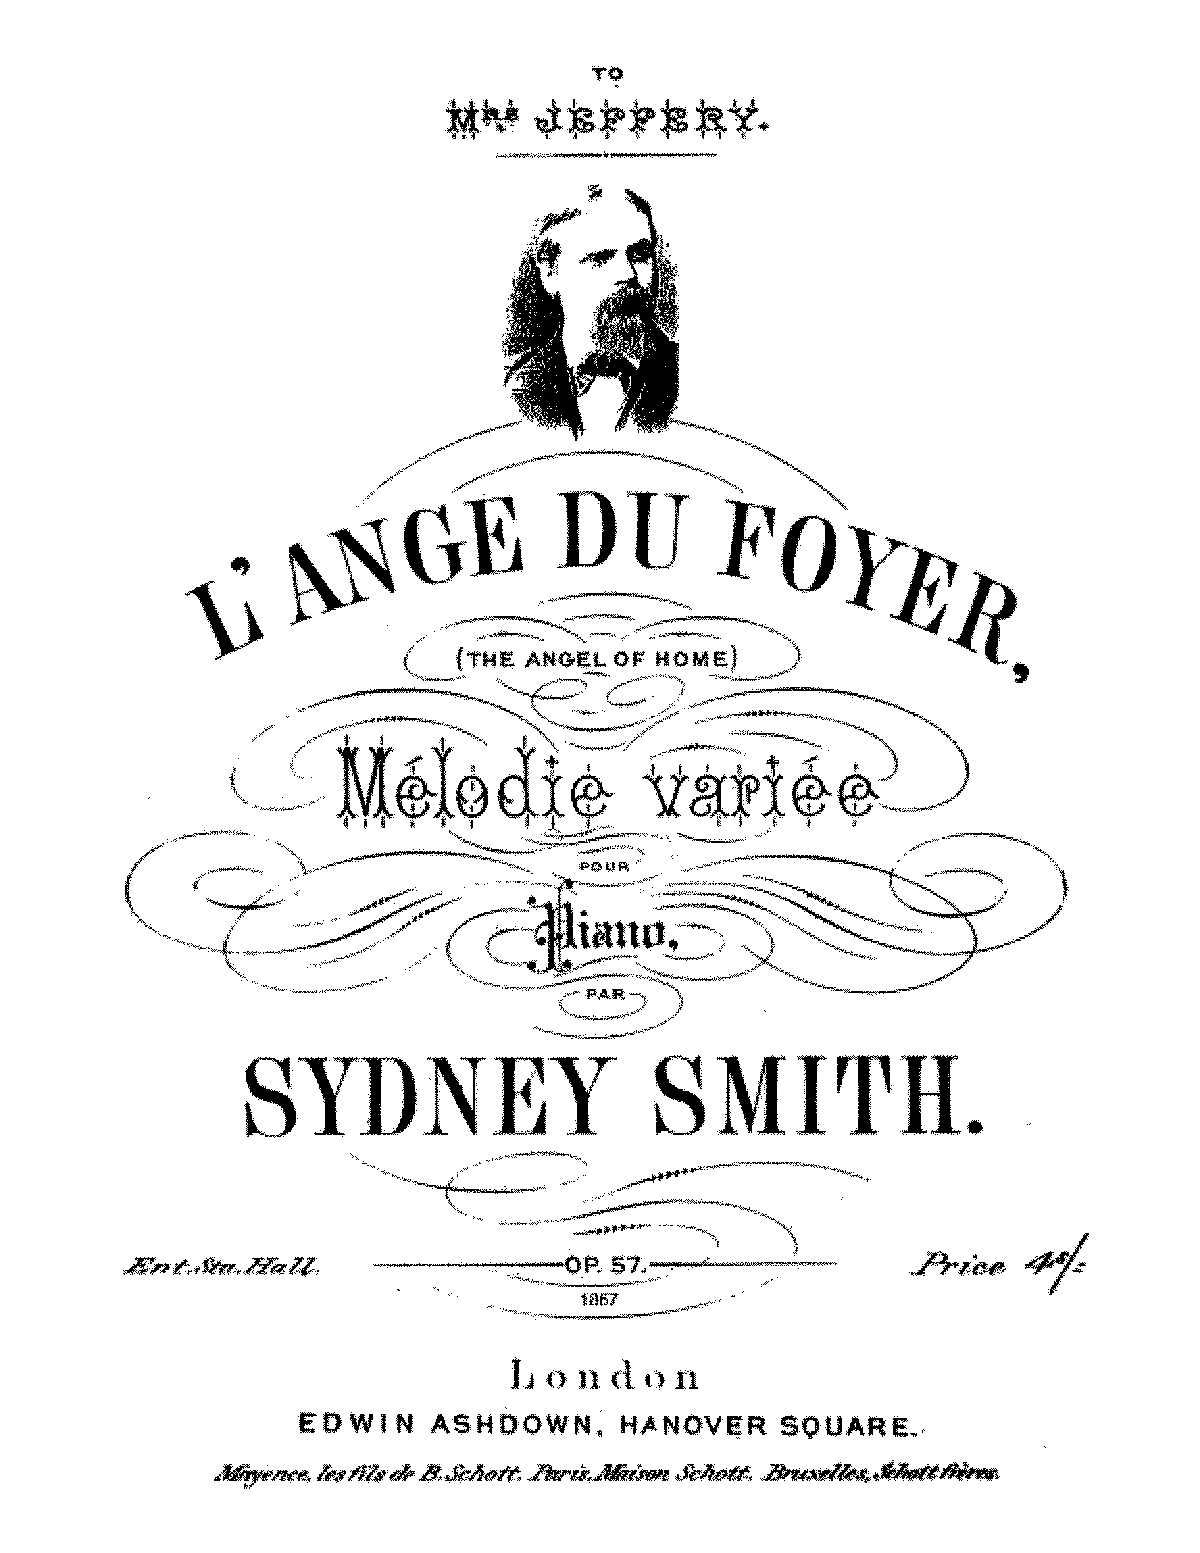 PMLP113107-Smith, Sydney op.57 l ange du foyer.pdf